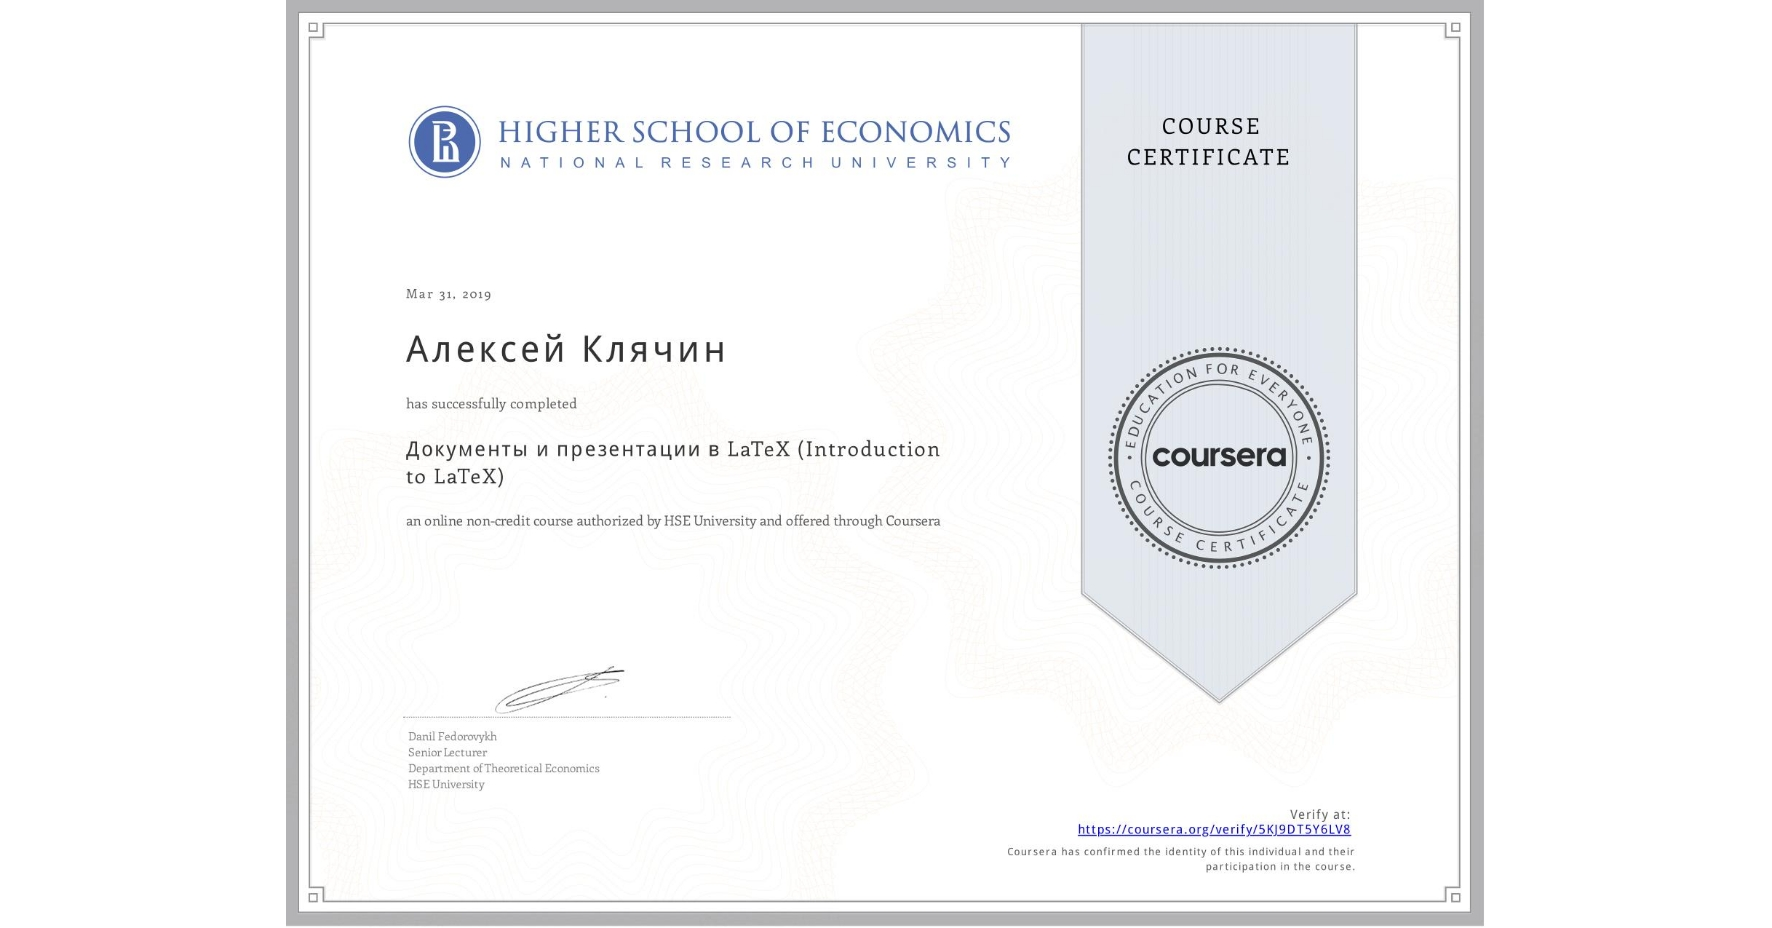 View certificate for Алексей Клячин, Документы и презентации в LaTeX (Introduction to LaTeX), an online non-credit course authorized by HSE University and offered through Coursera